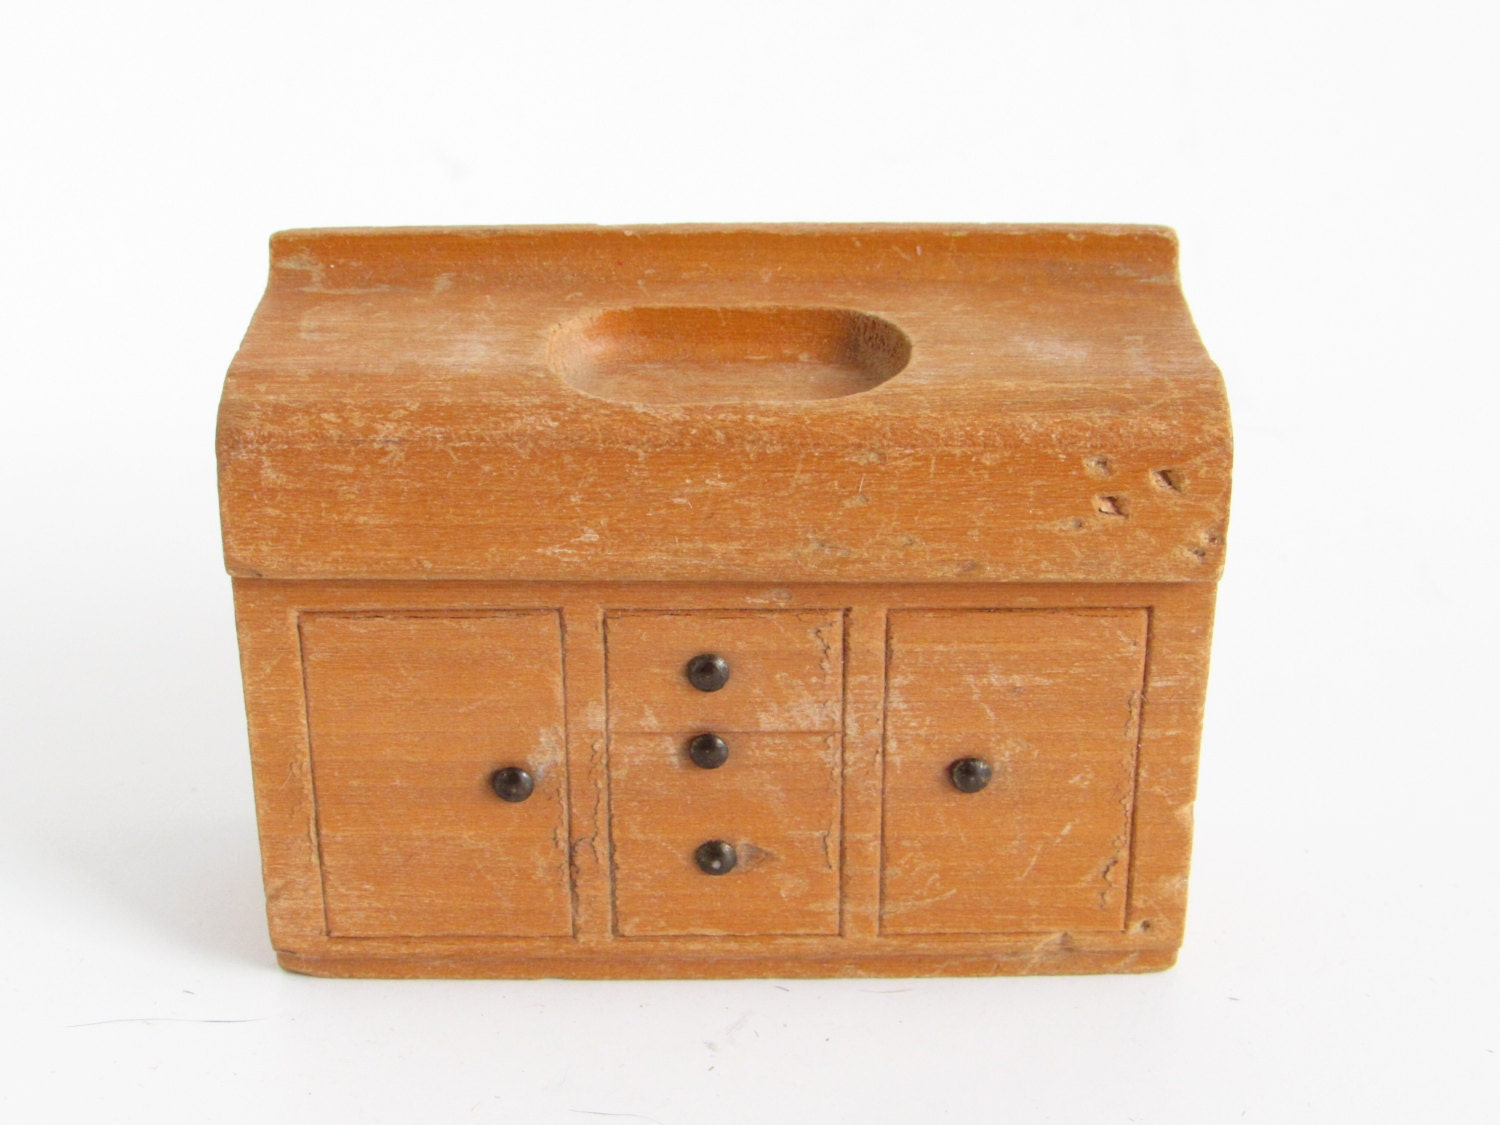 Vintage Nancy Forbes Dollhouse Furniture Doll House Miniature Wooden Sink 3 4 Scale Kitchen